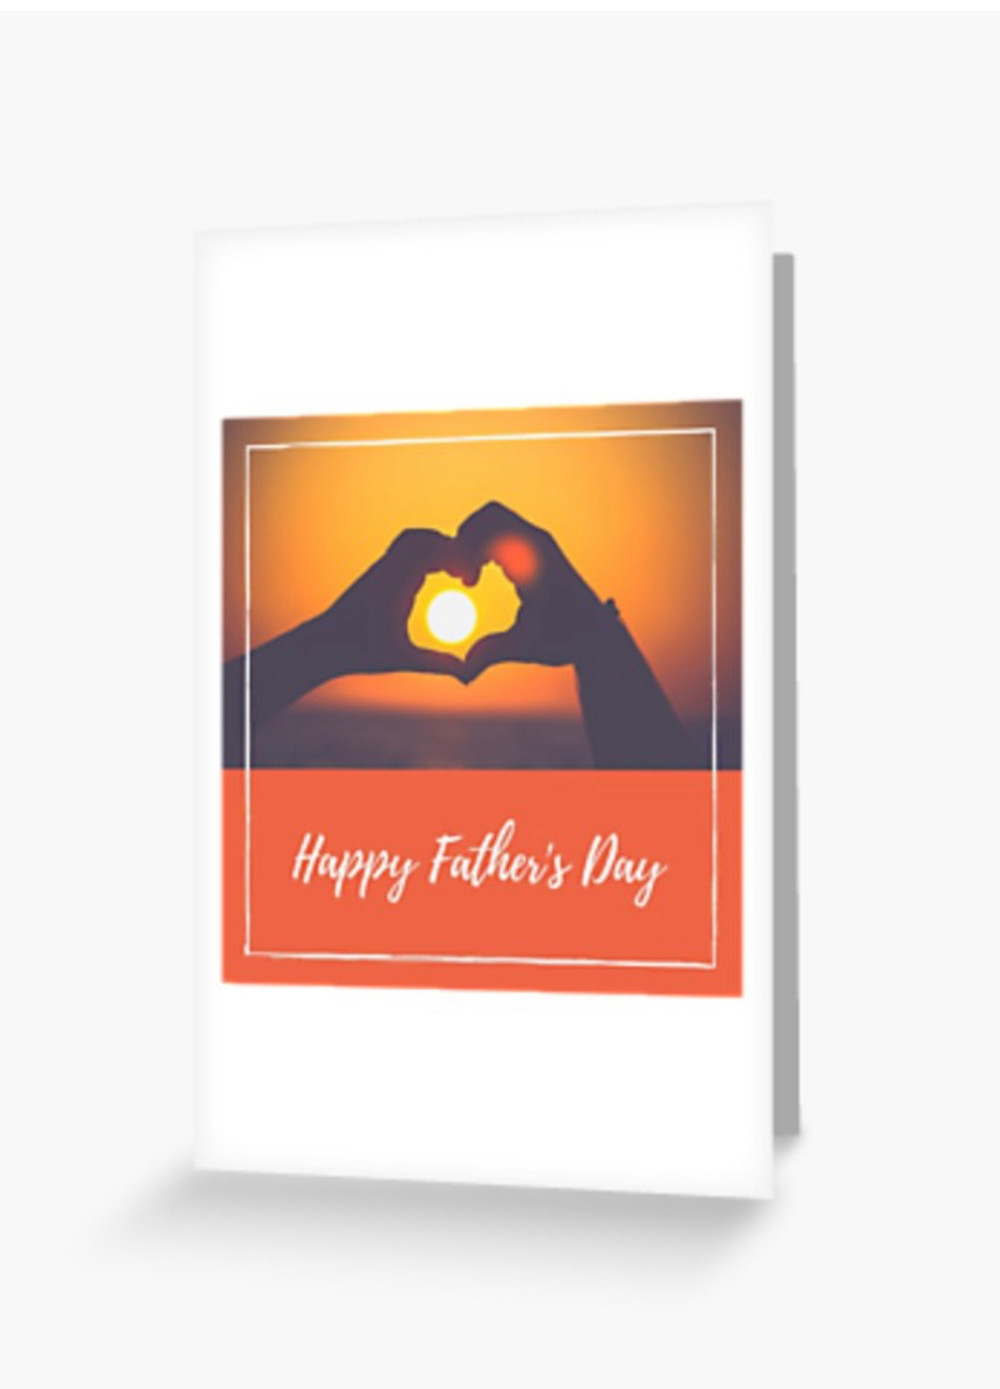 Father's day card design by chelledavies. Sold on Redbubble.